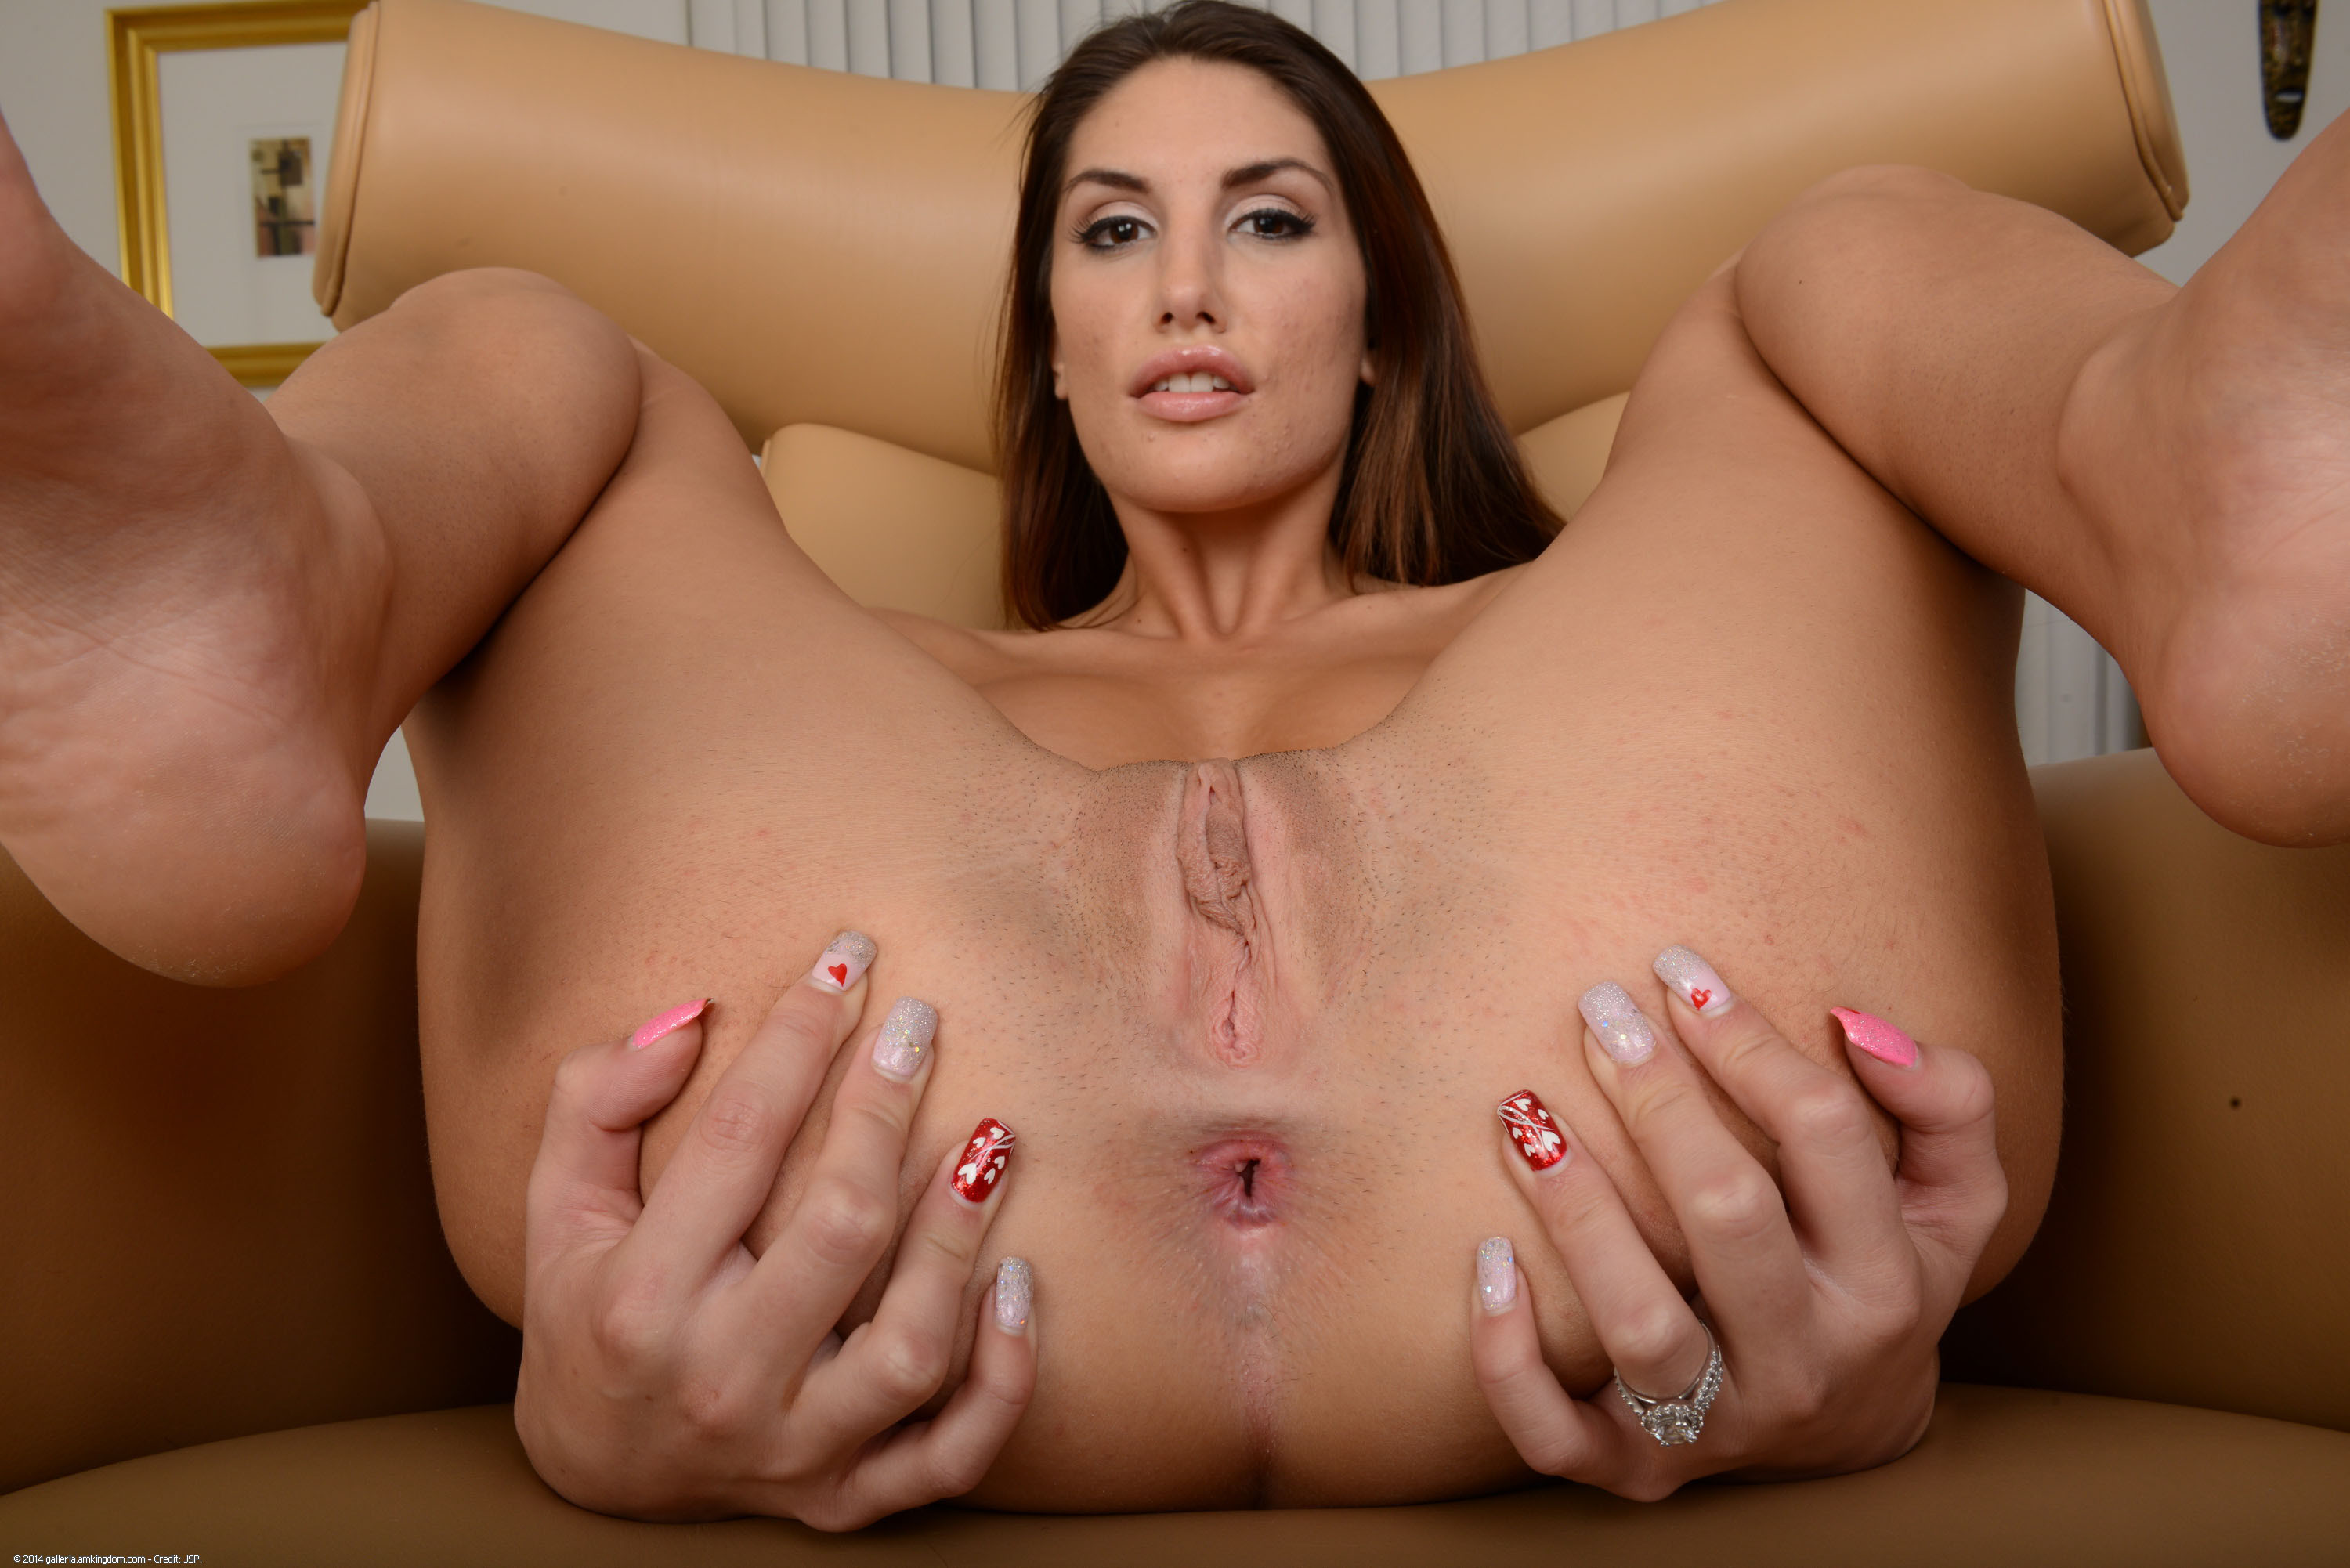 august ames' pussy and asshole porn photo - eporner